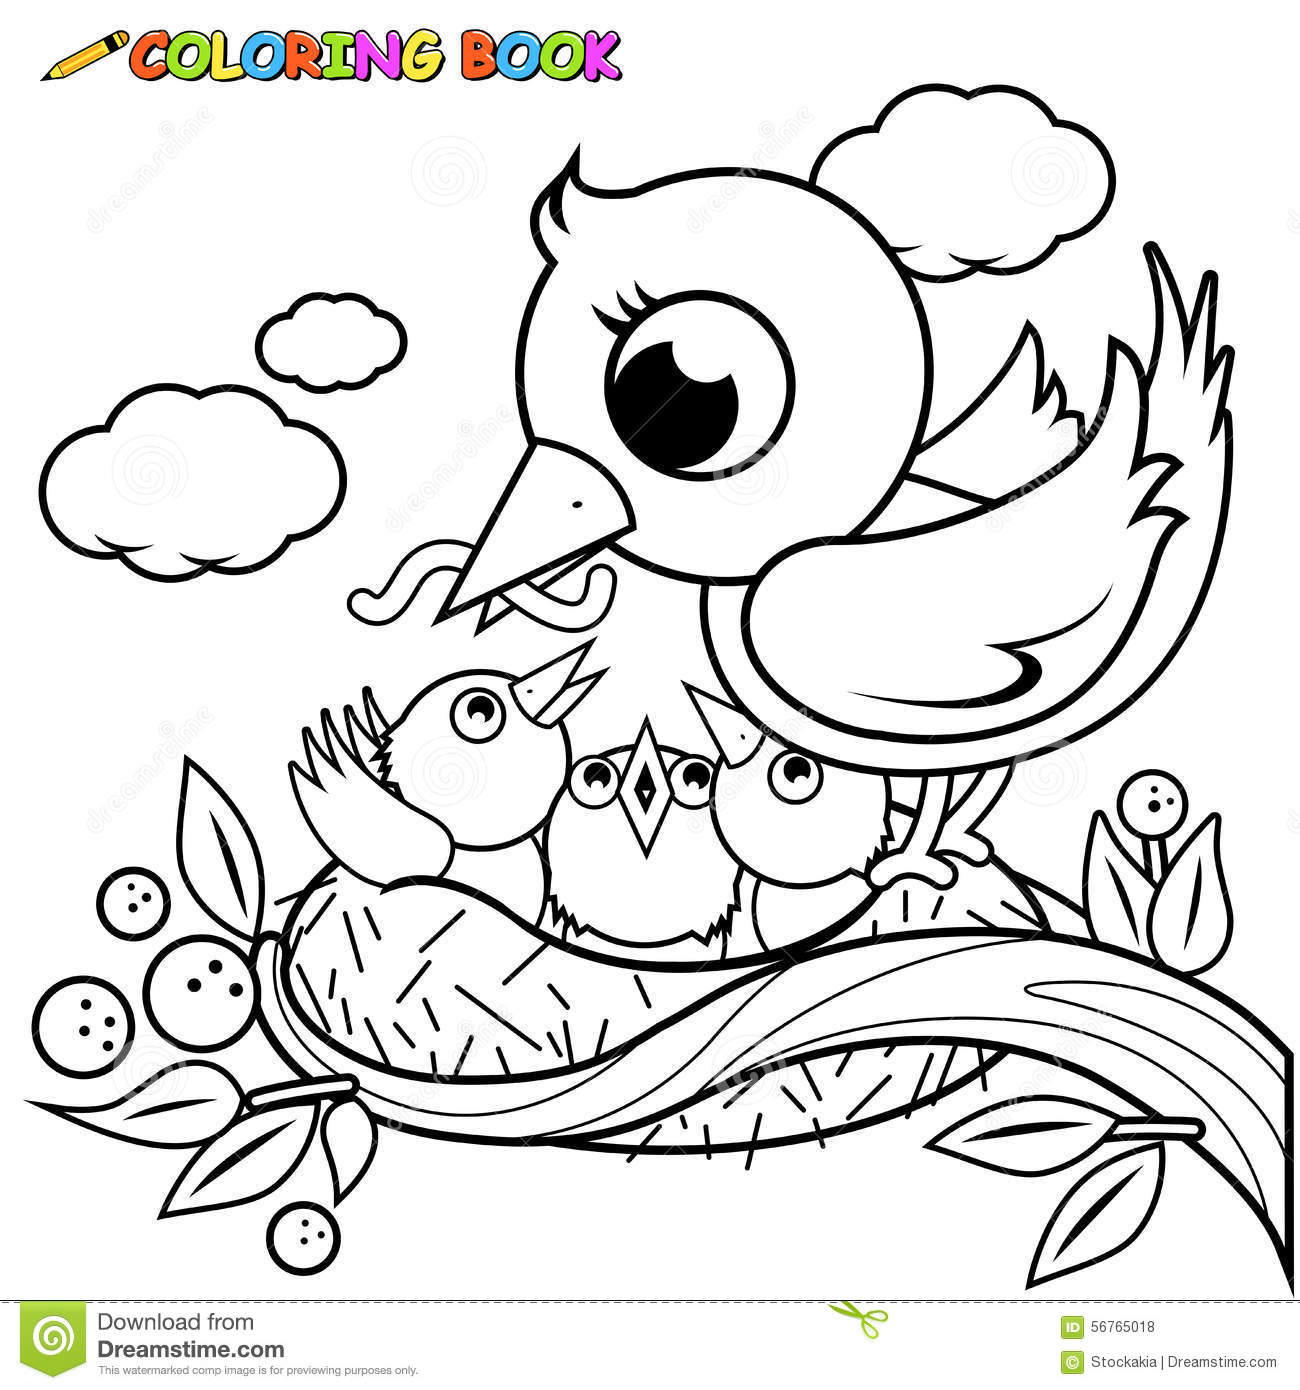 Cute bird coloring pages for kids - Solar help